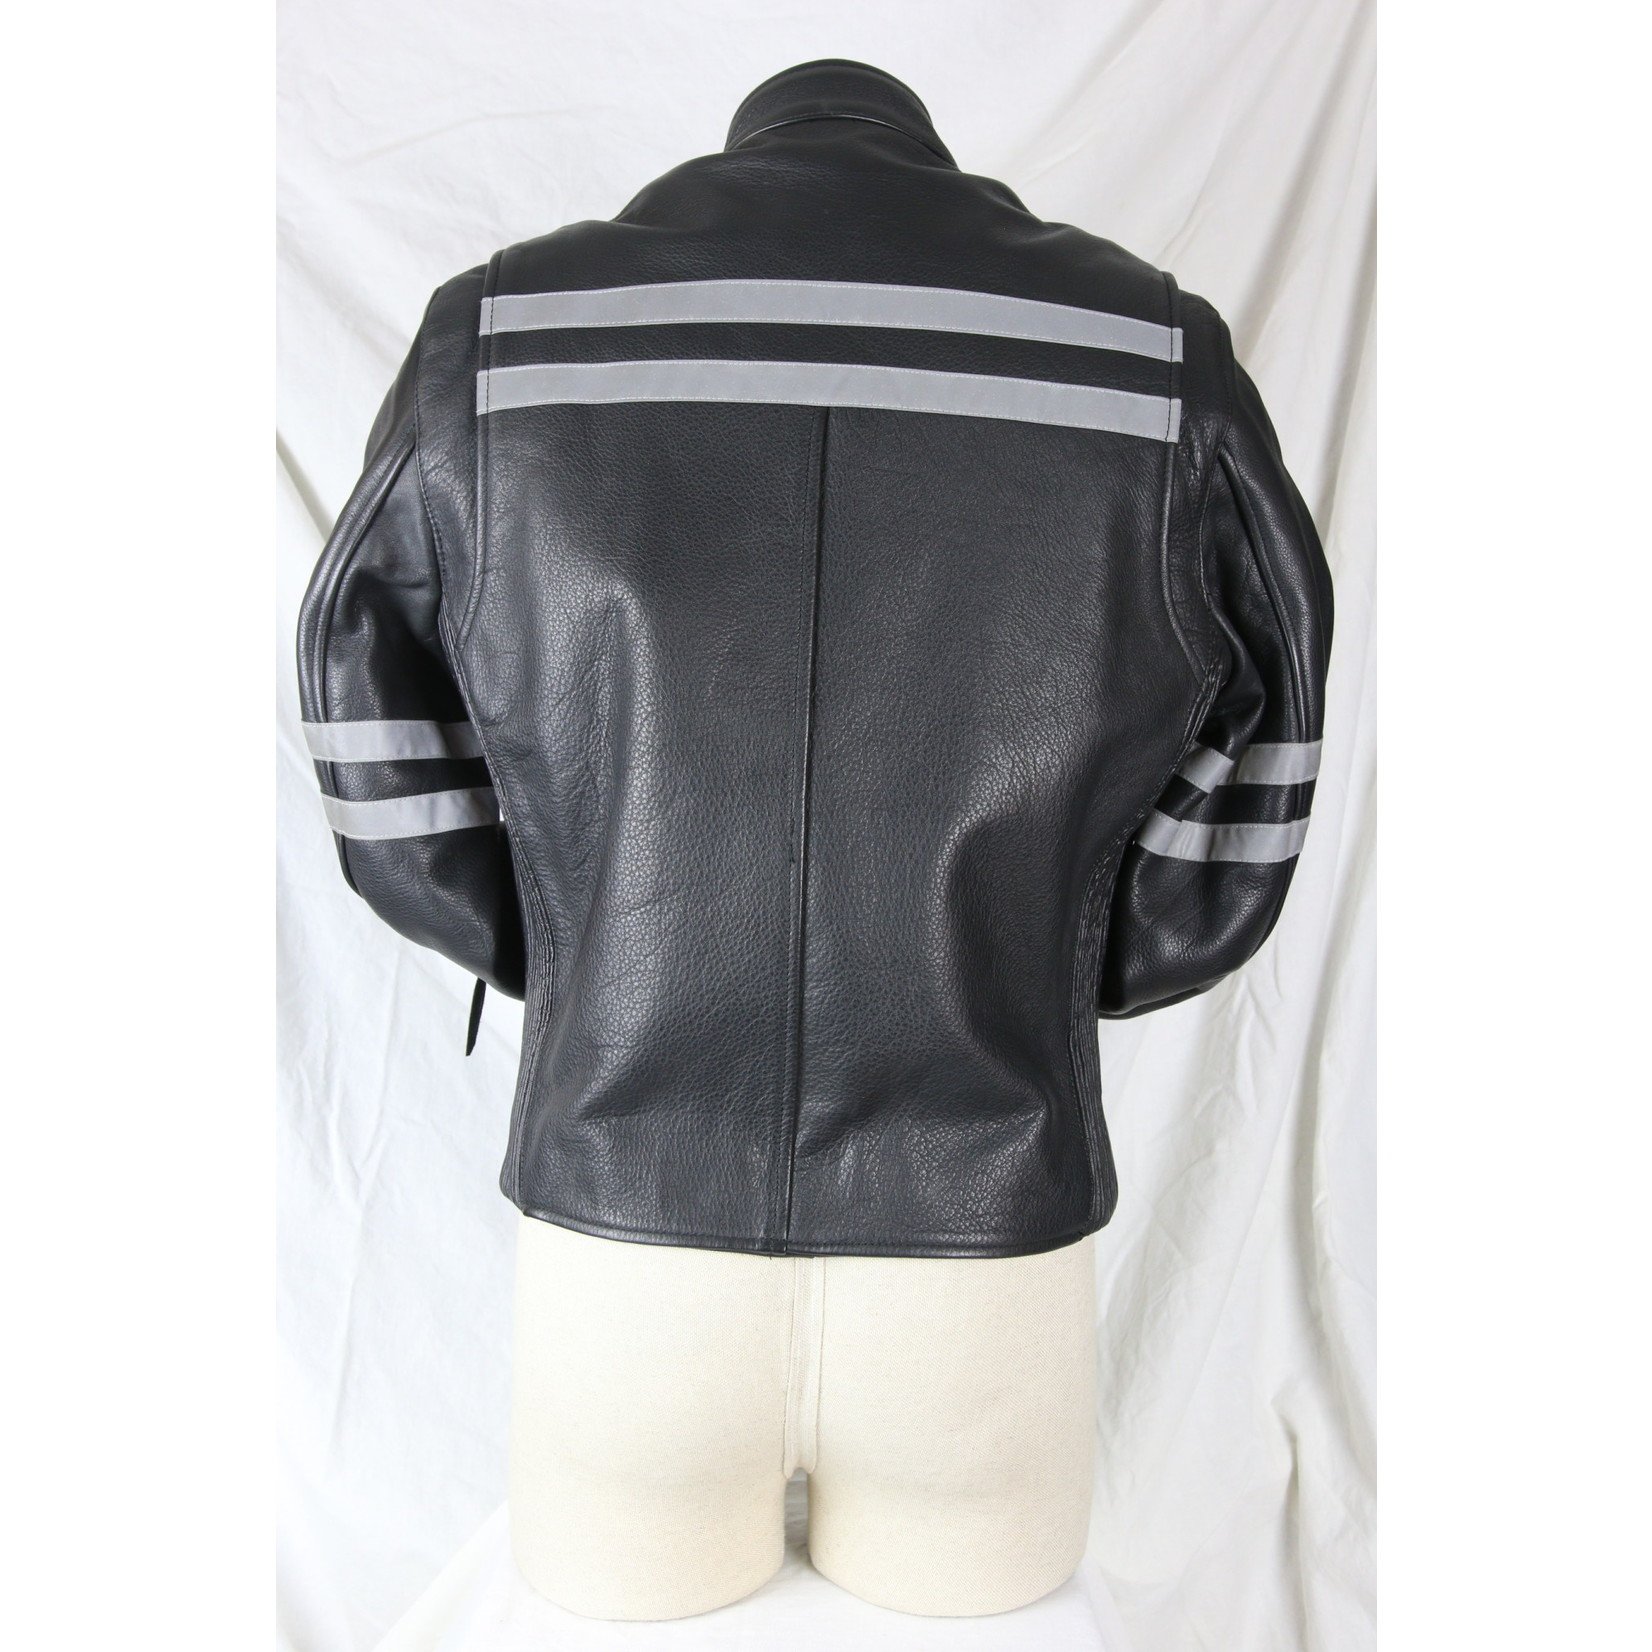 Safari Collections Men's Reflective Striped Straight Collar Leather Biker Jacket with Zip-Out Liner